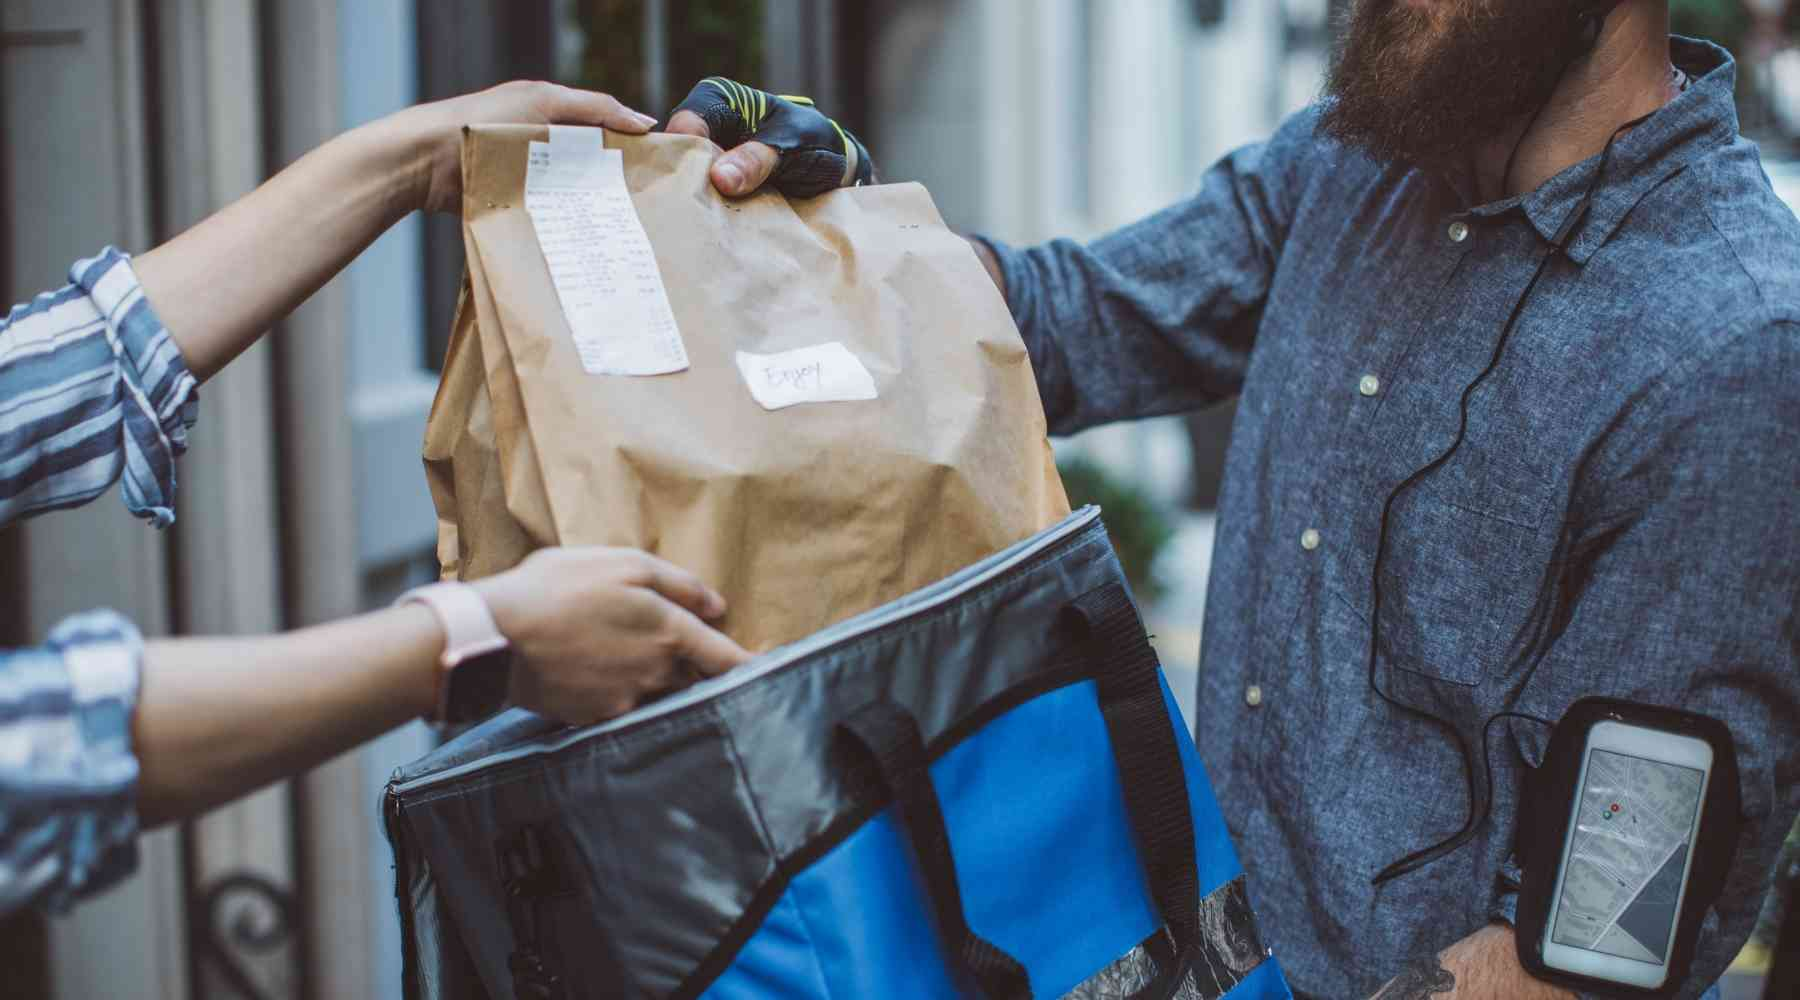 How to Make $50 a Day - Food Delivery